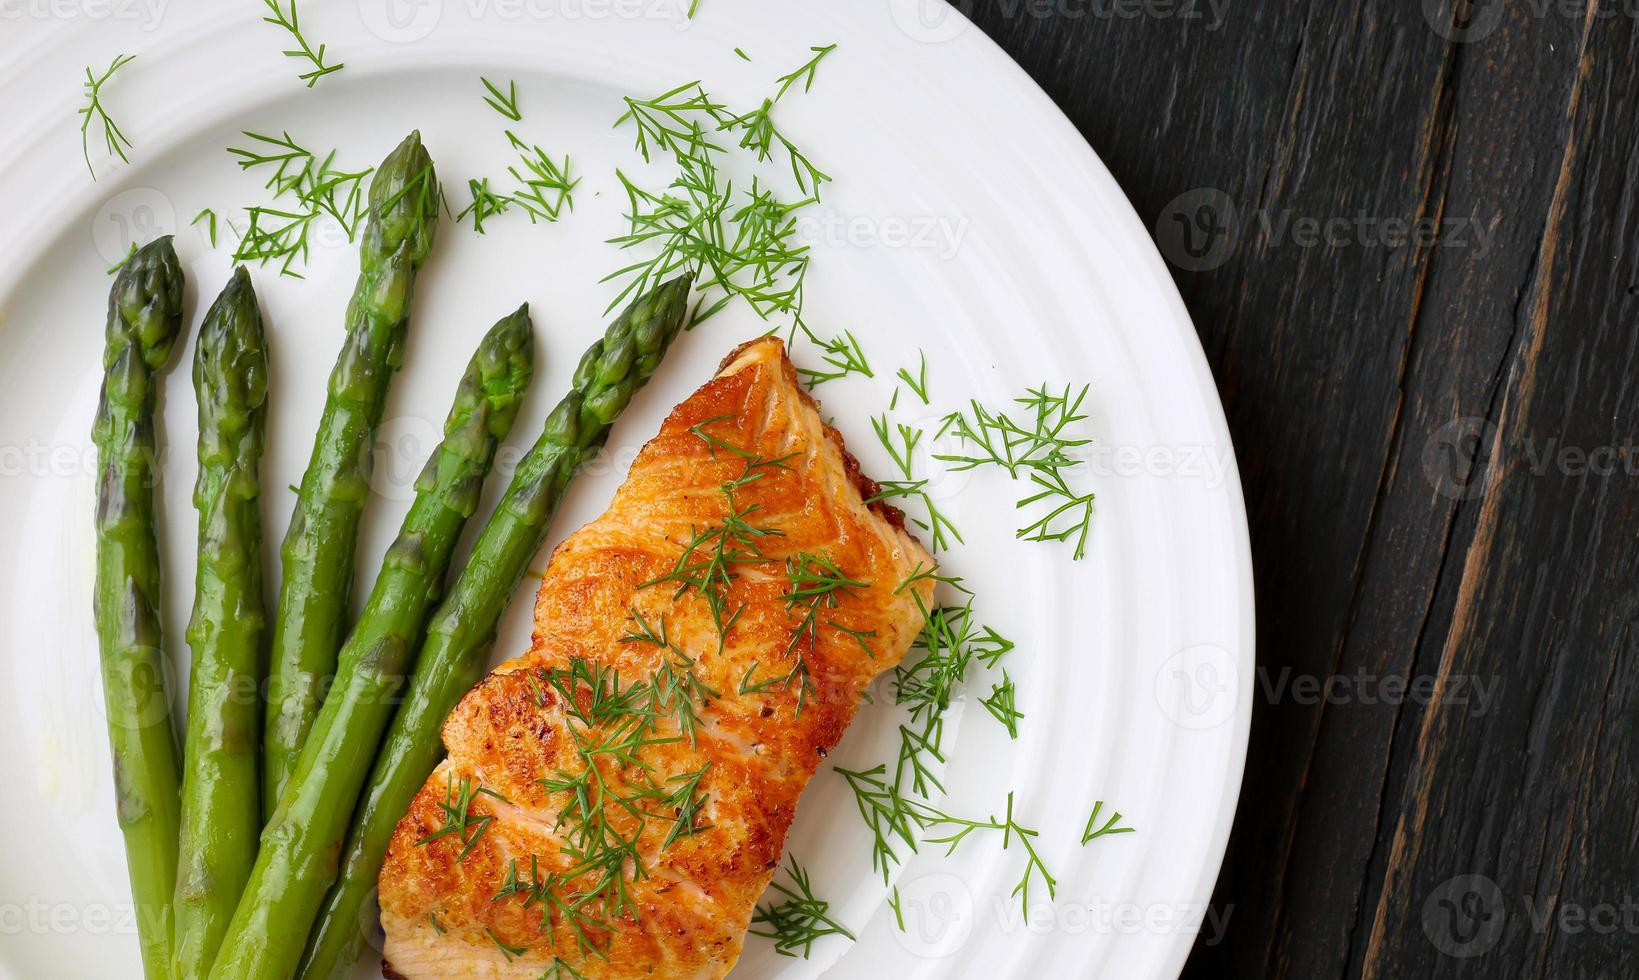 Salmon Fillet With Asparagus on White Plate photo